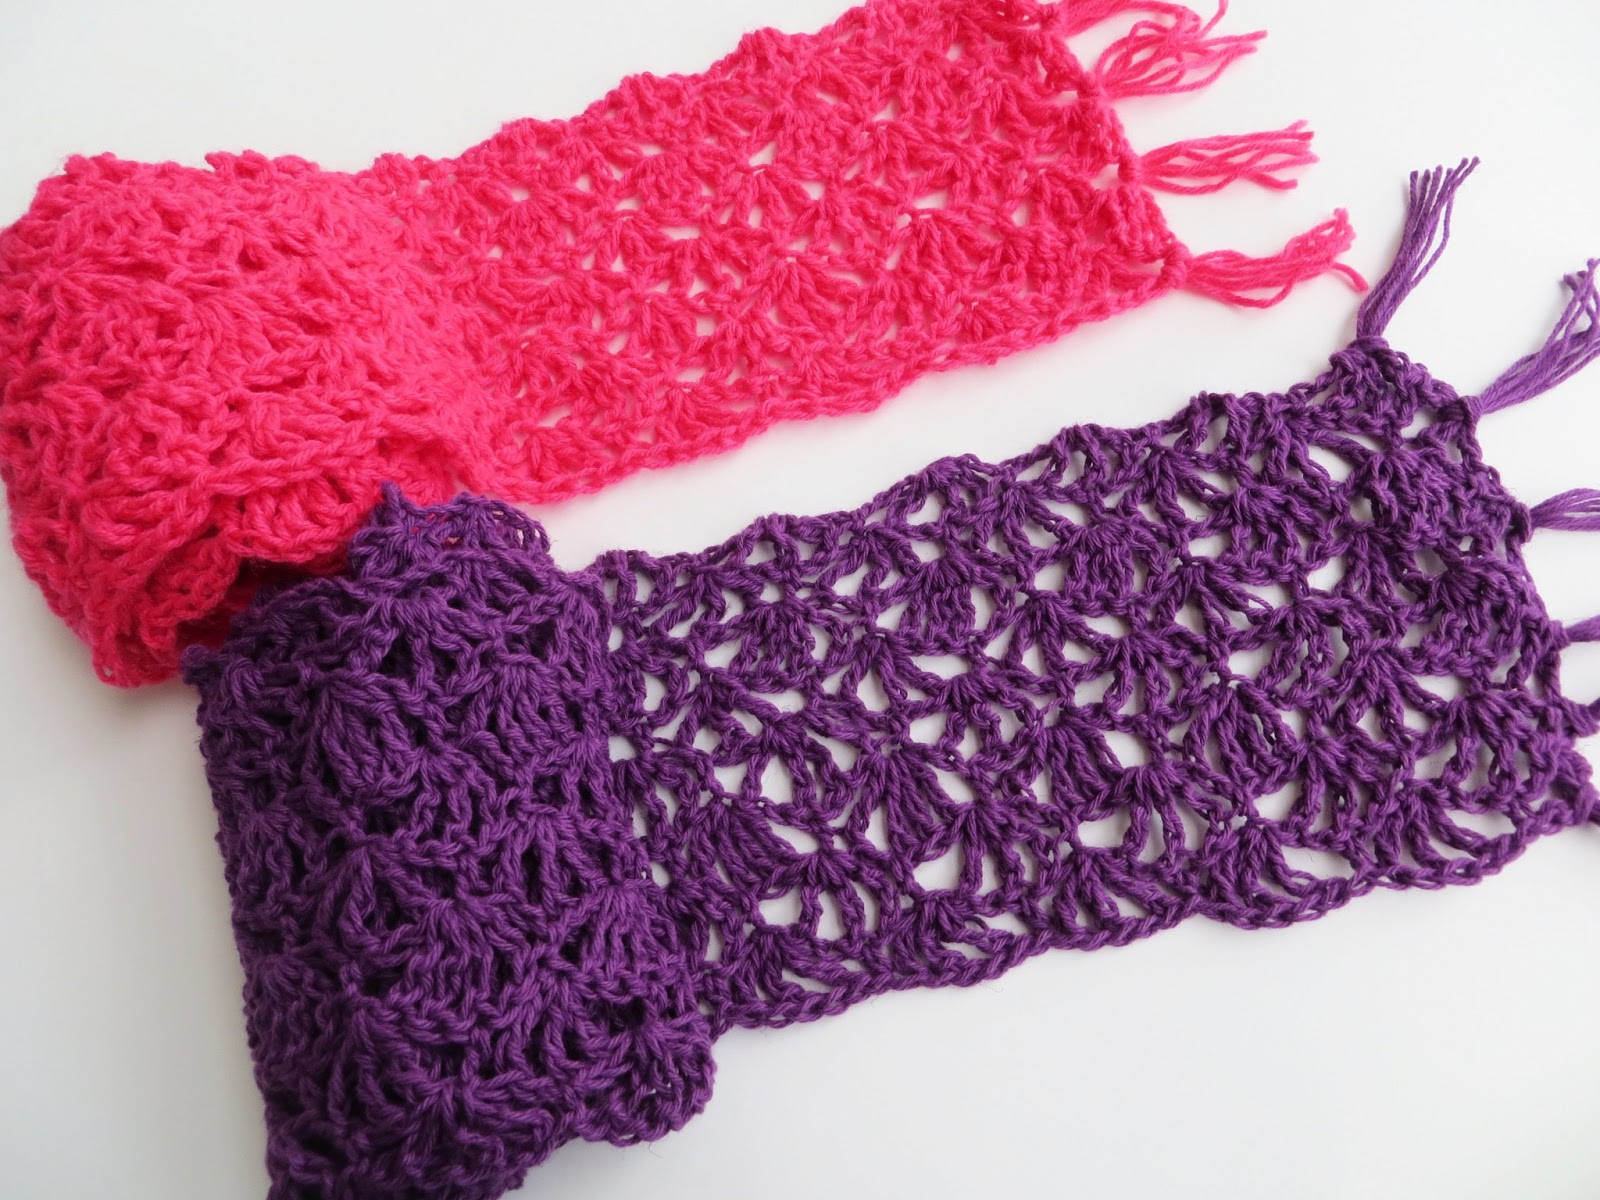 Crochet Stitches Video Free : Crochet Dreamz: Alana Lacy Scarf, Free Crochet Pattern